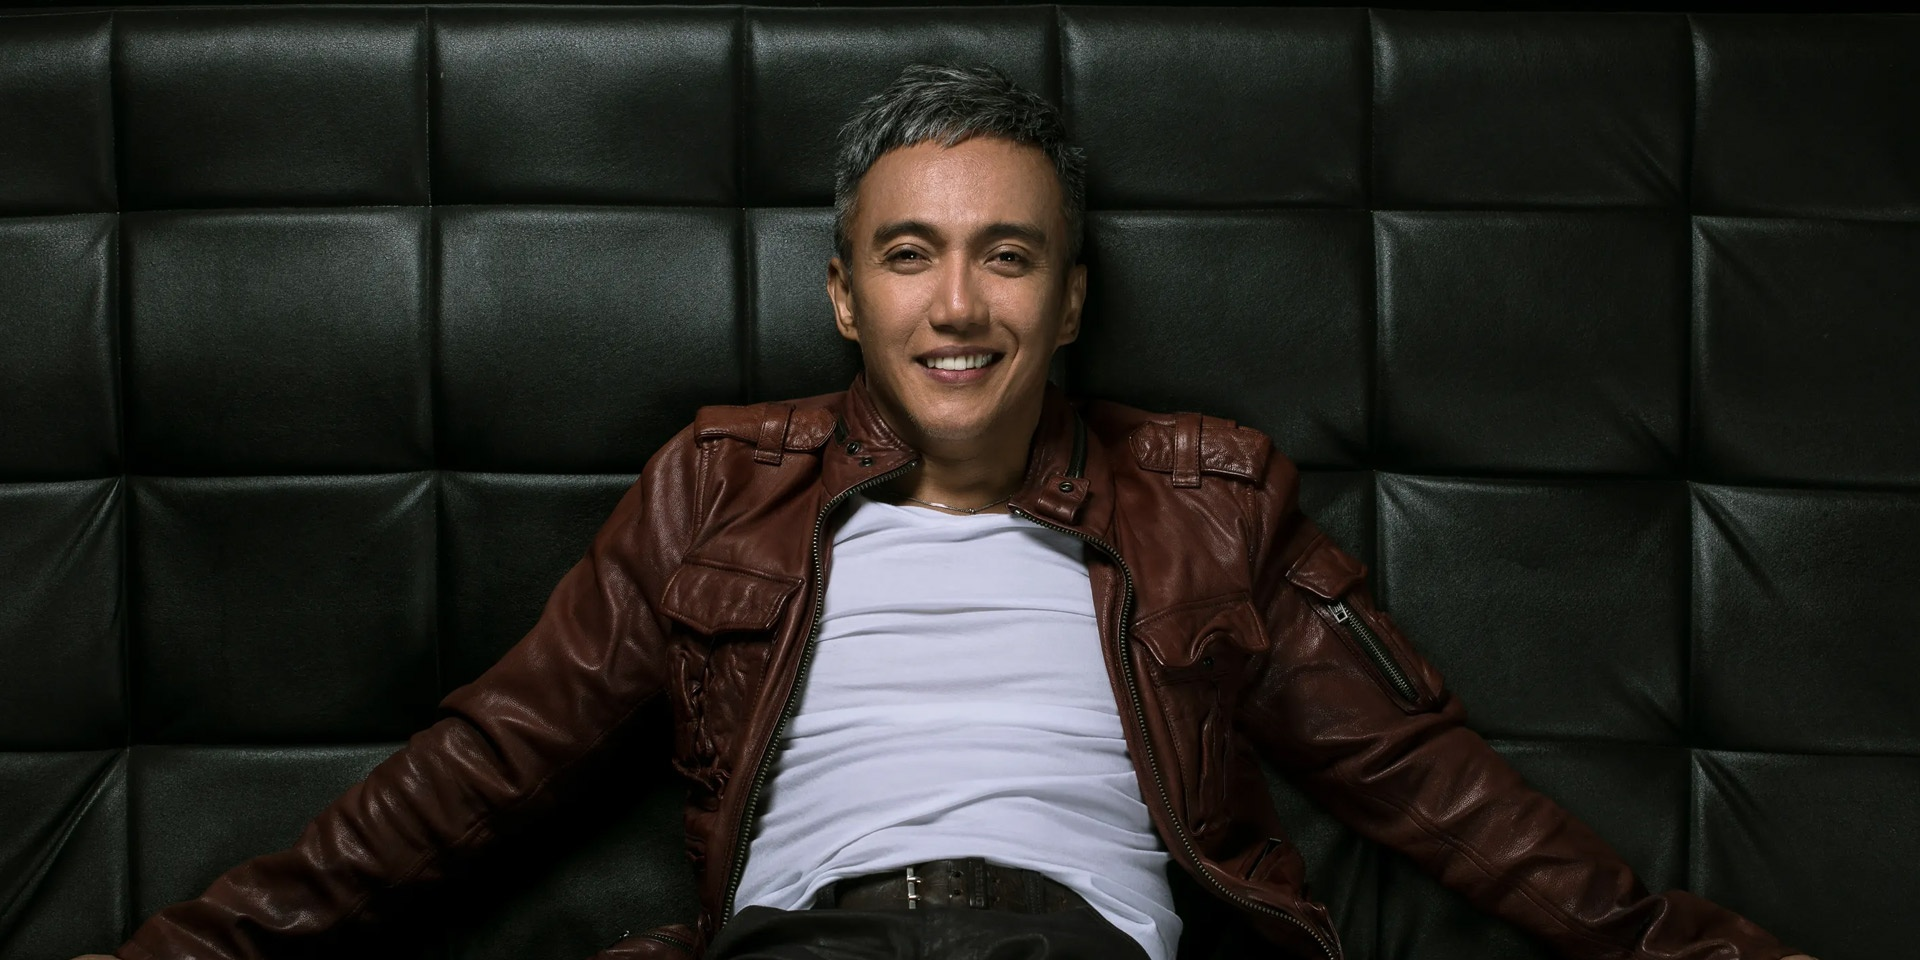 Crazy Rich Asians director Jon M. Chu to direct Arnel Pineda biopic